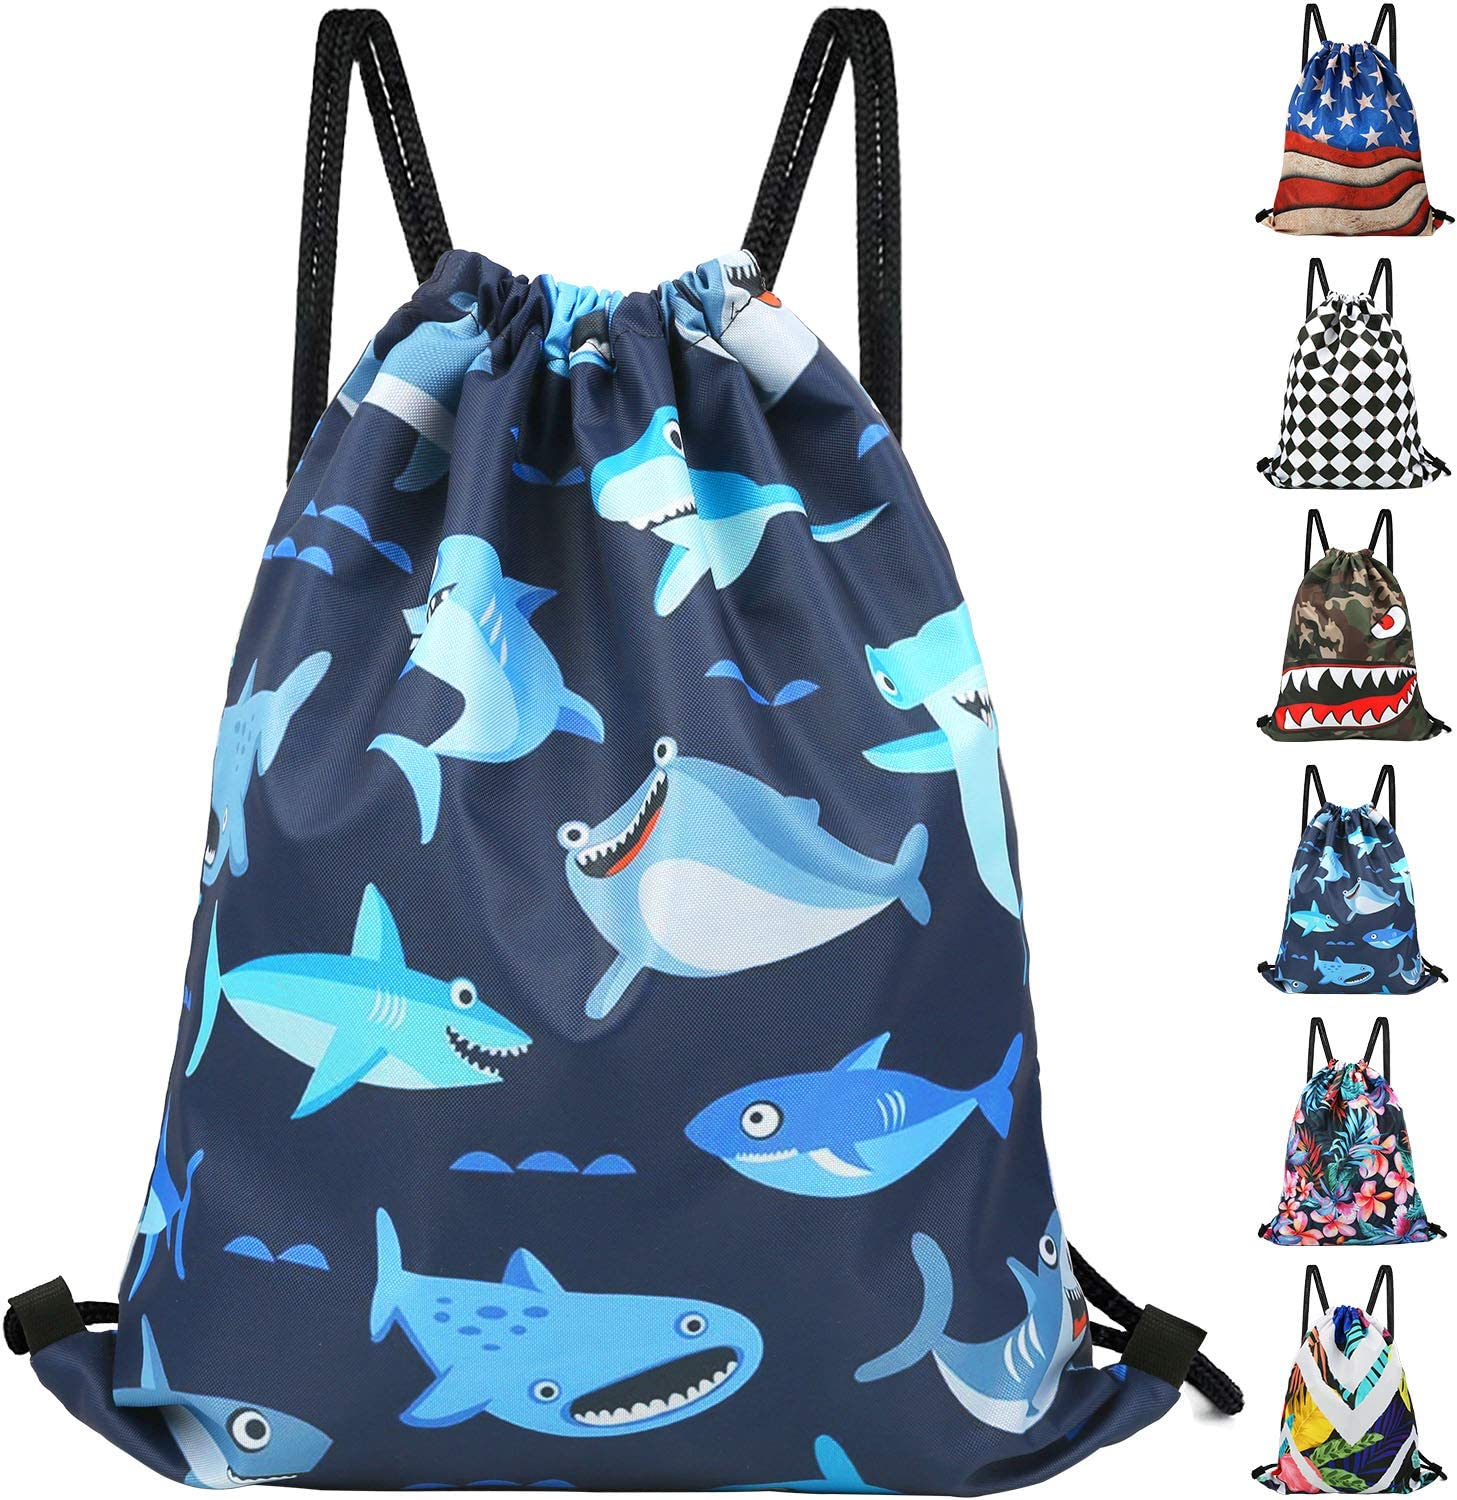 Drawstring Backpack Bag for Women Kids - Great for Yoga, Travel, Hiking, Beach Bags